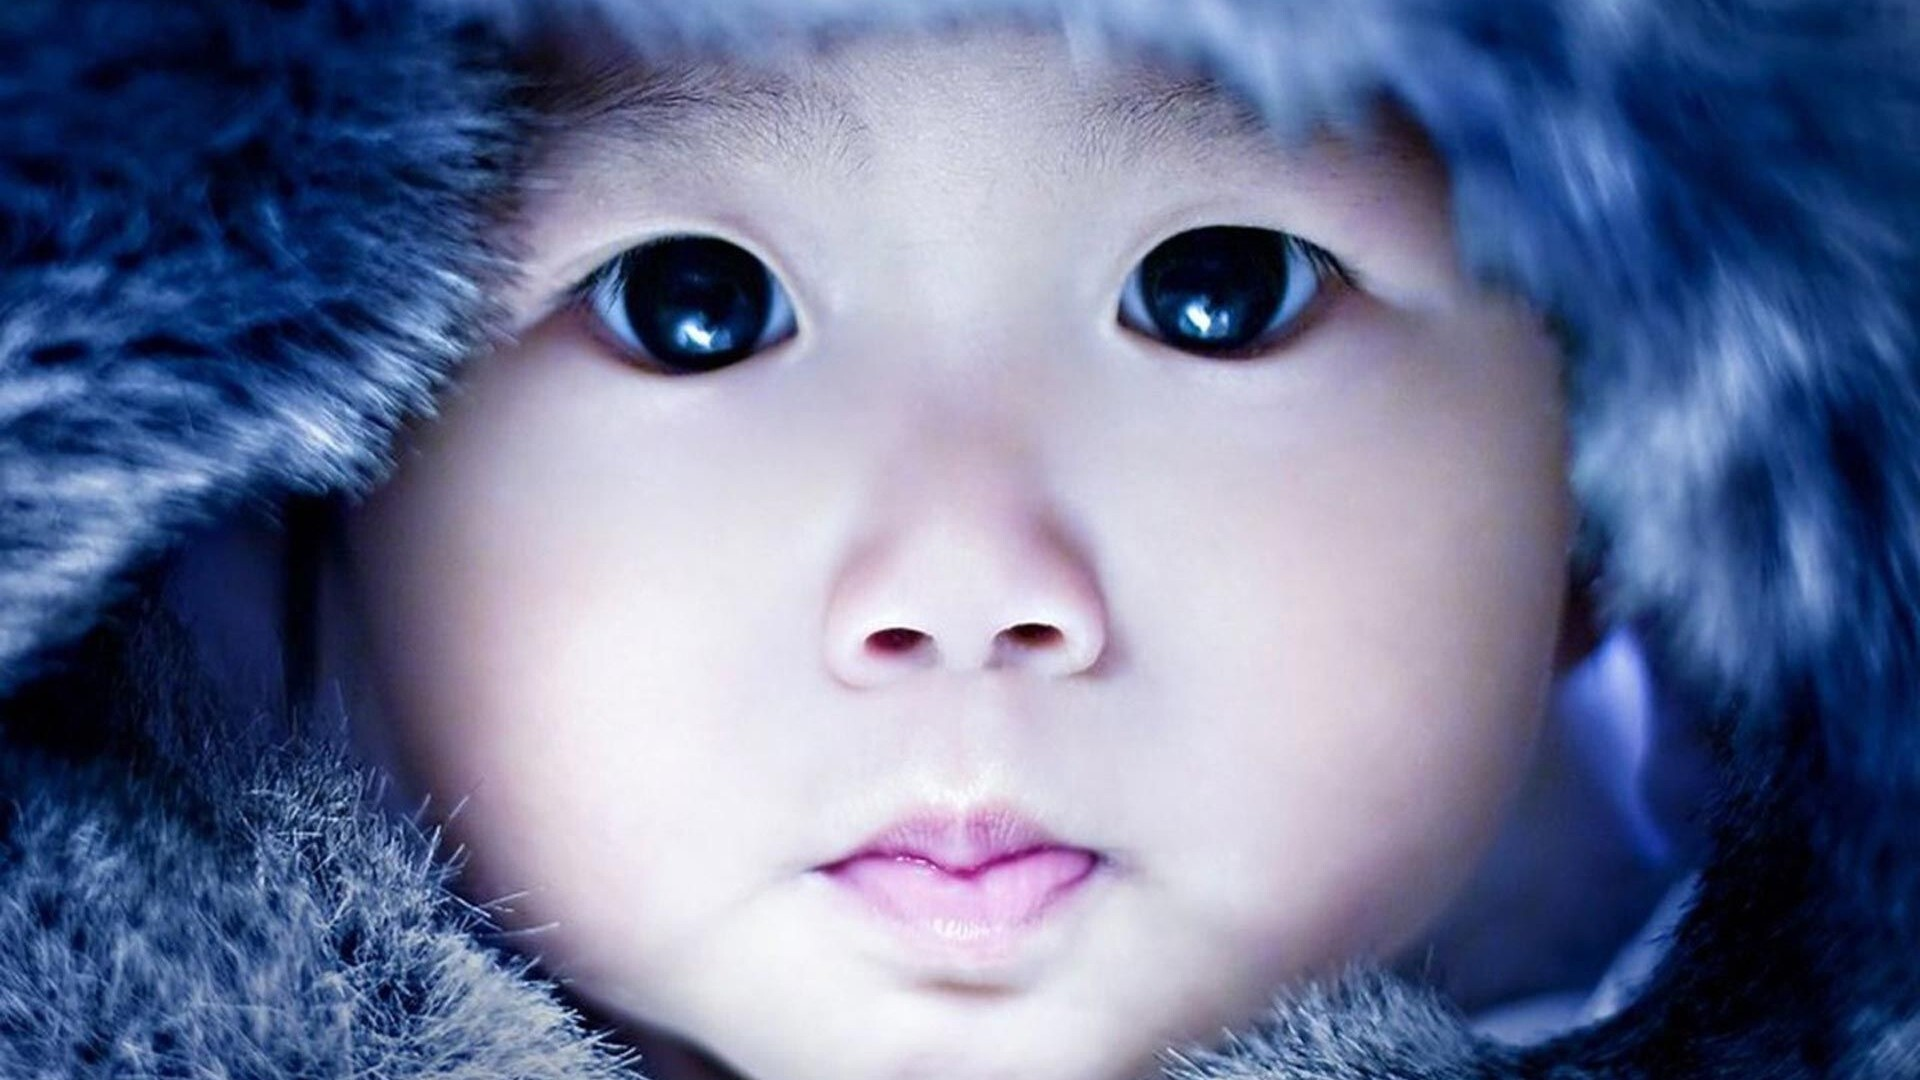 Cute Baby Wallpapers Hd Free: Cute Baby Close Up Face